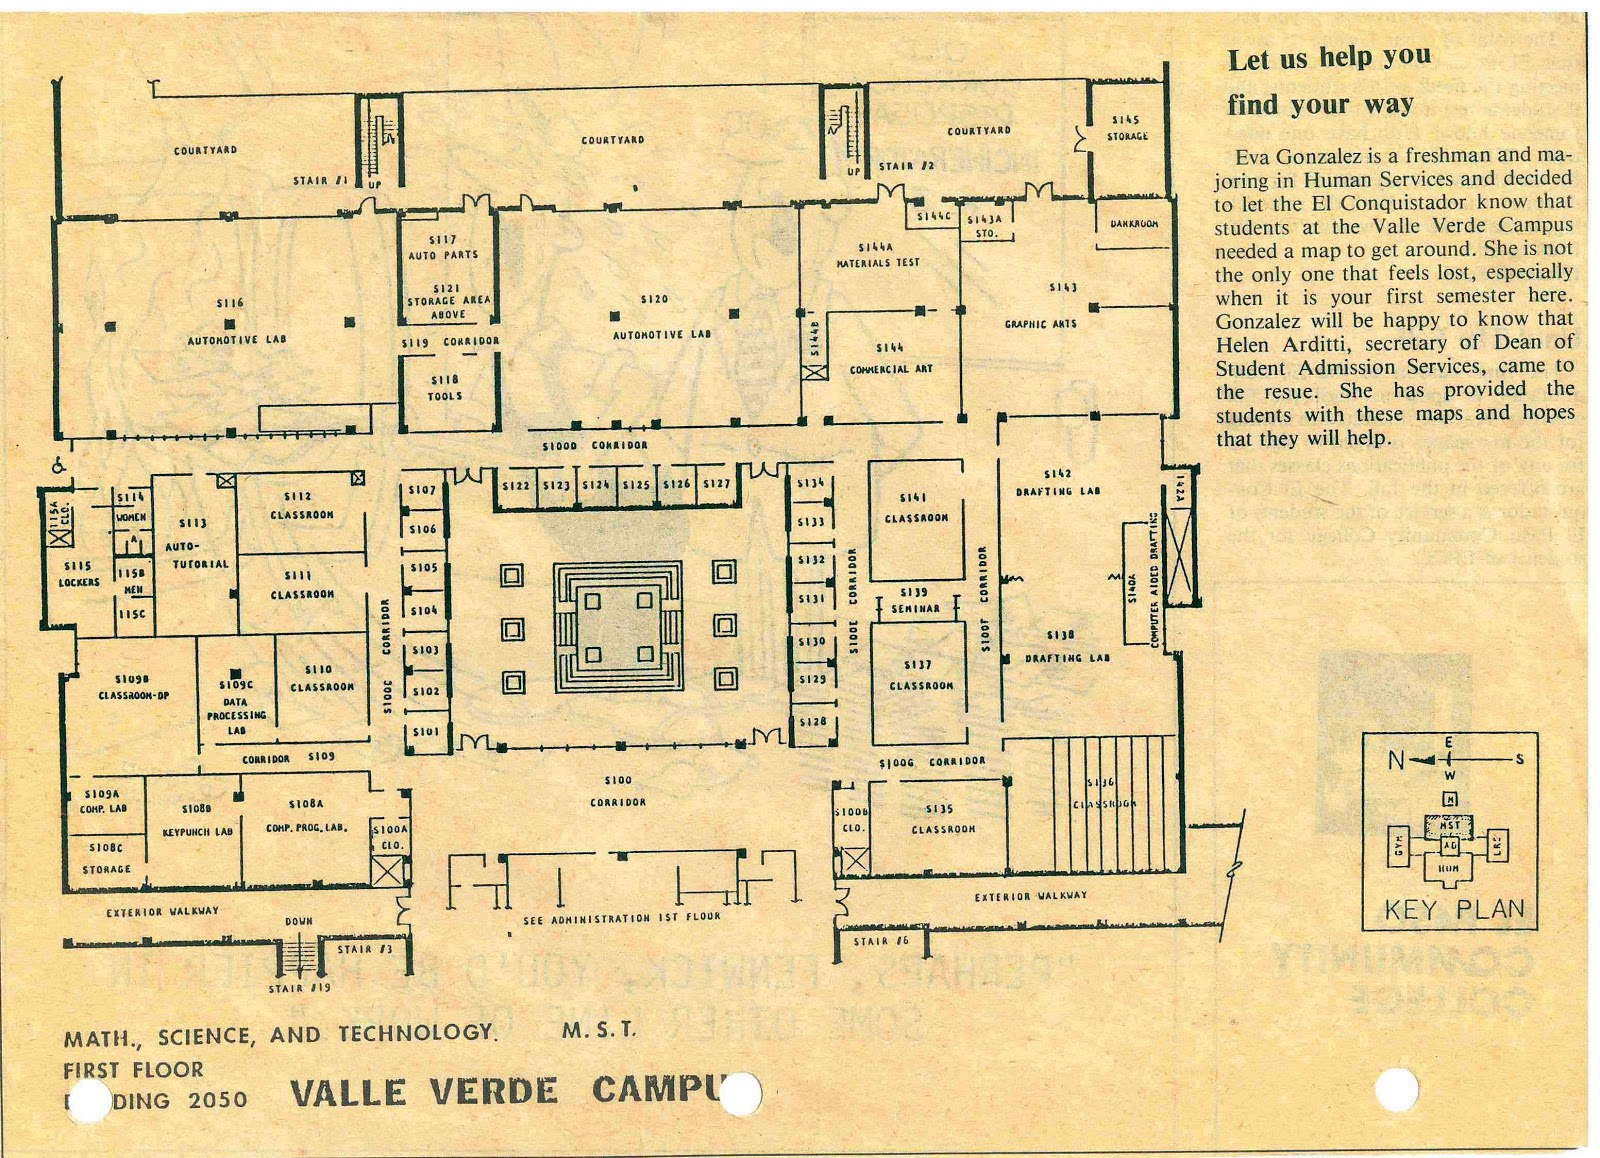 Epcc Valle Verde Map Related Keywords Suggestions Epcc Valle